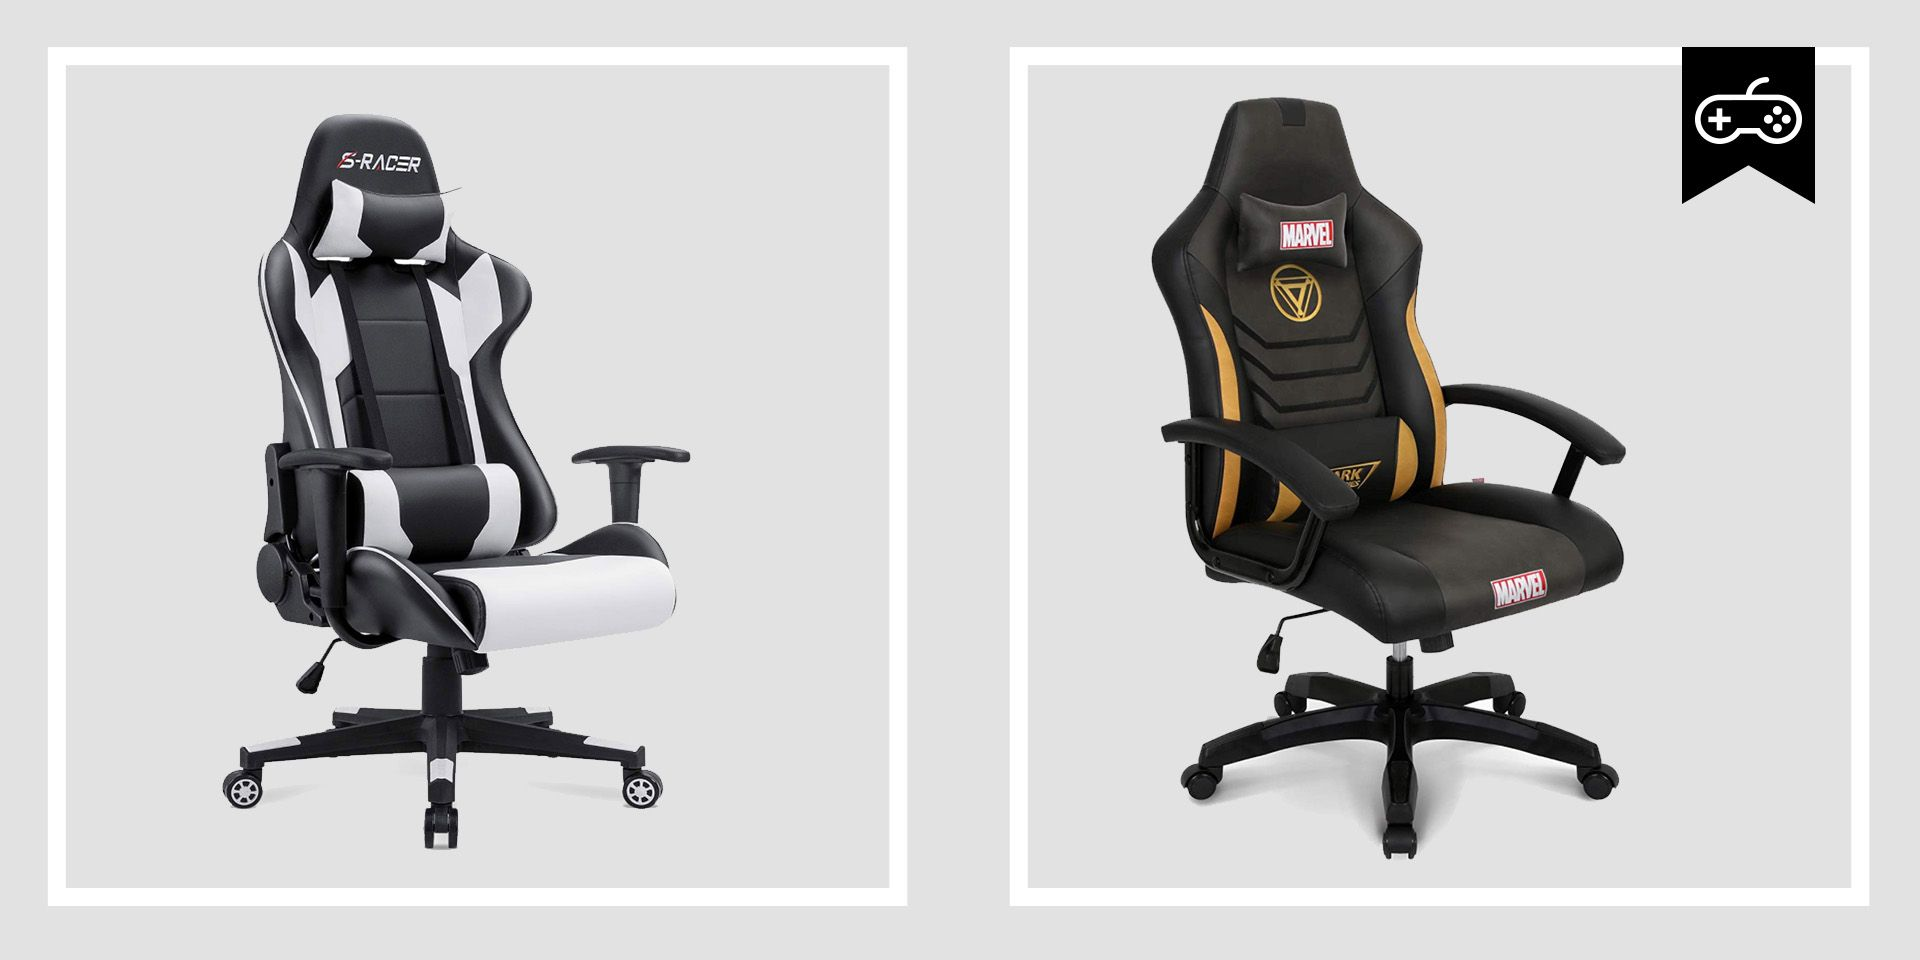 Tremendous 10 Best Gaming Chairs 2019 Cheap Seats For Playing Video Games Pdpeps Interior Chair Design Pdpepsorg